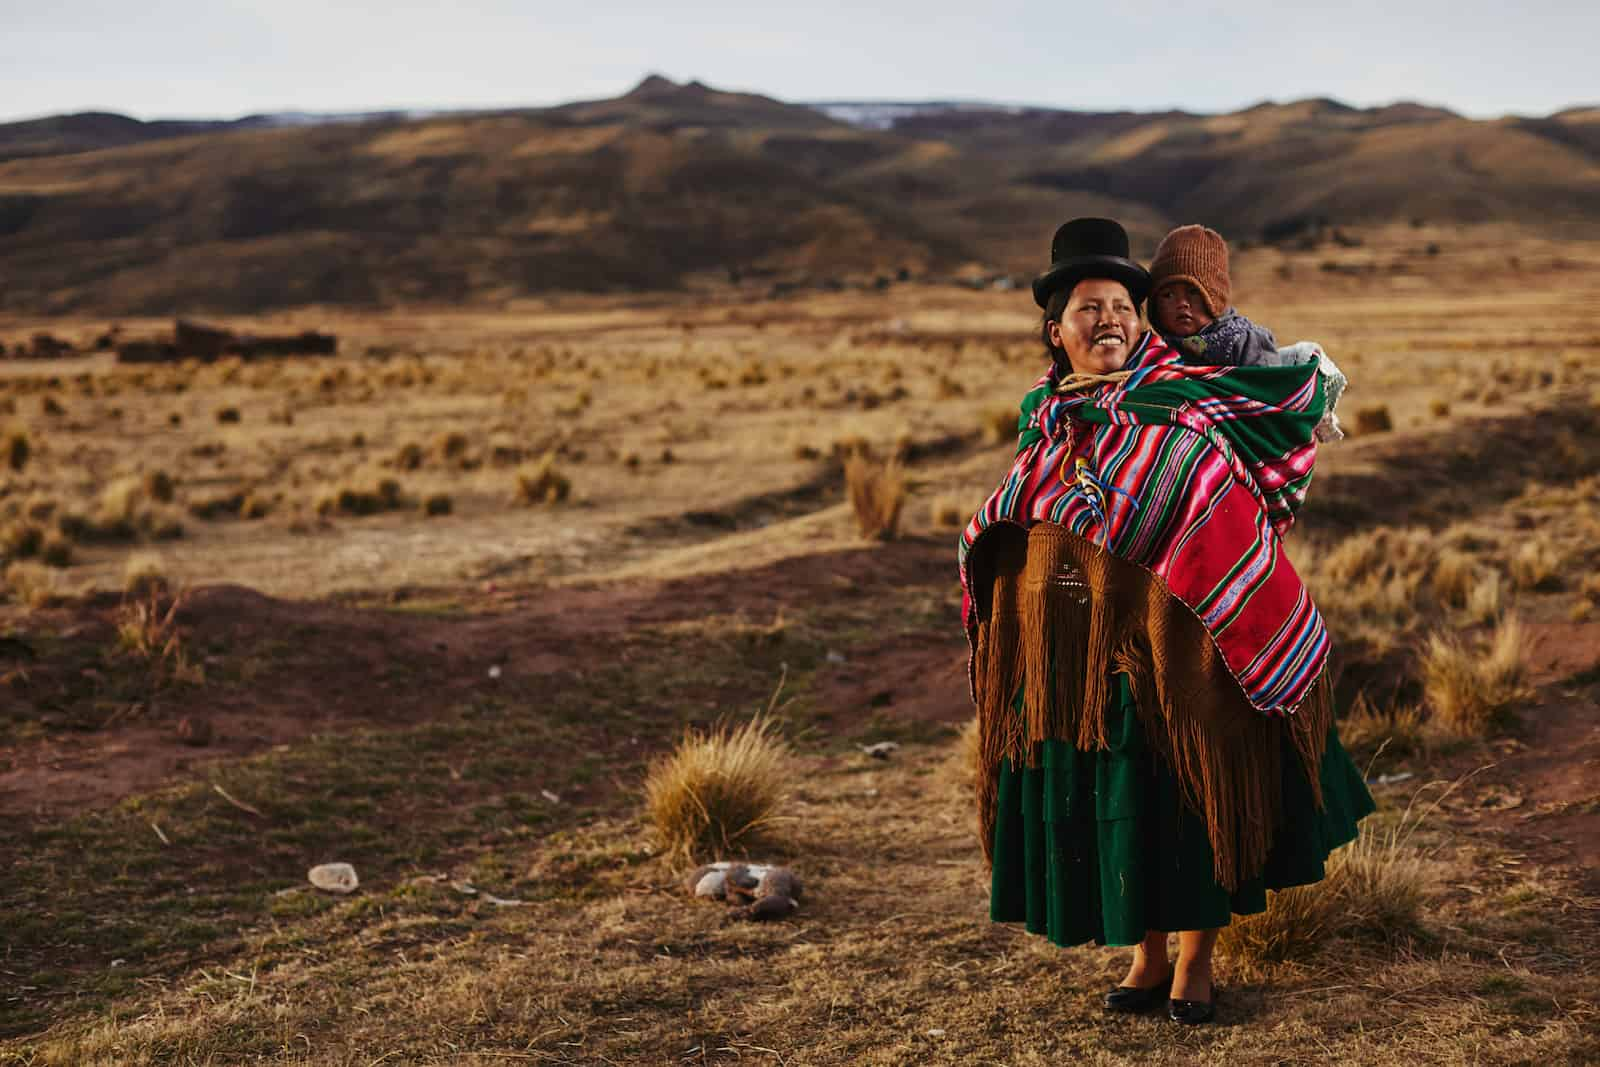 A woman wearing a black bowler hat, colorful shawl and traditional Bolivian clothes stands in a wide field, carrying a baby on her back.